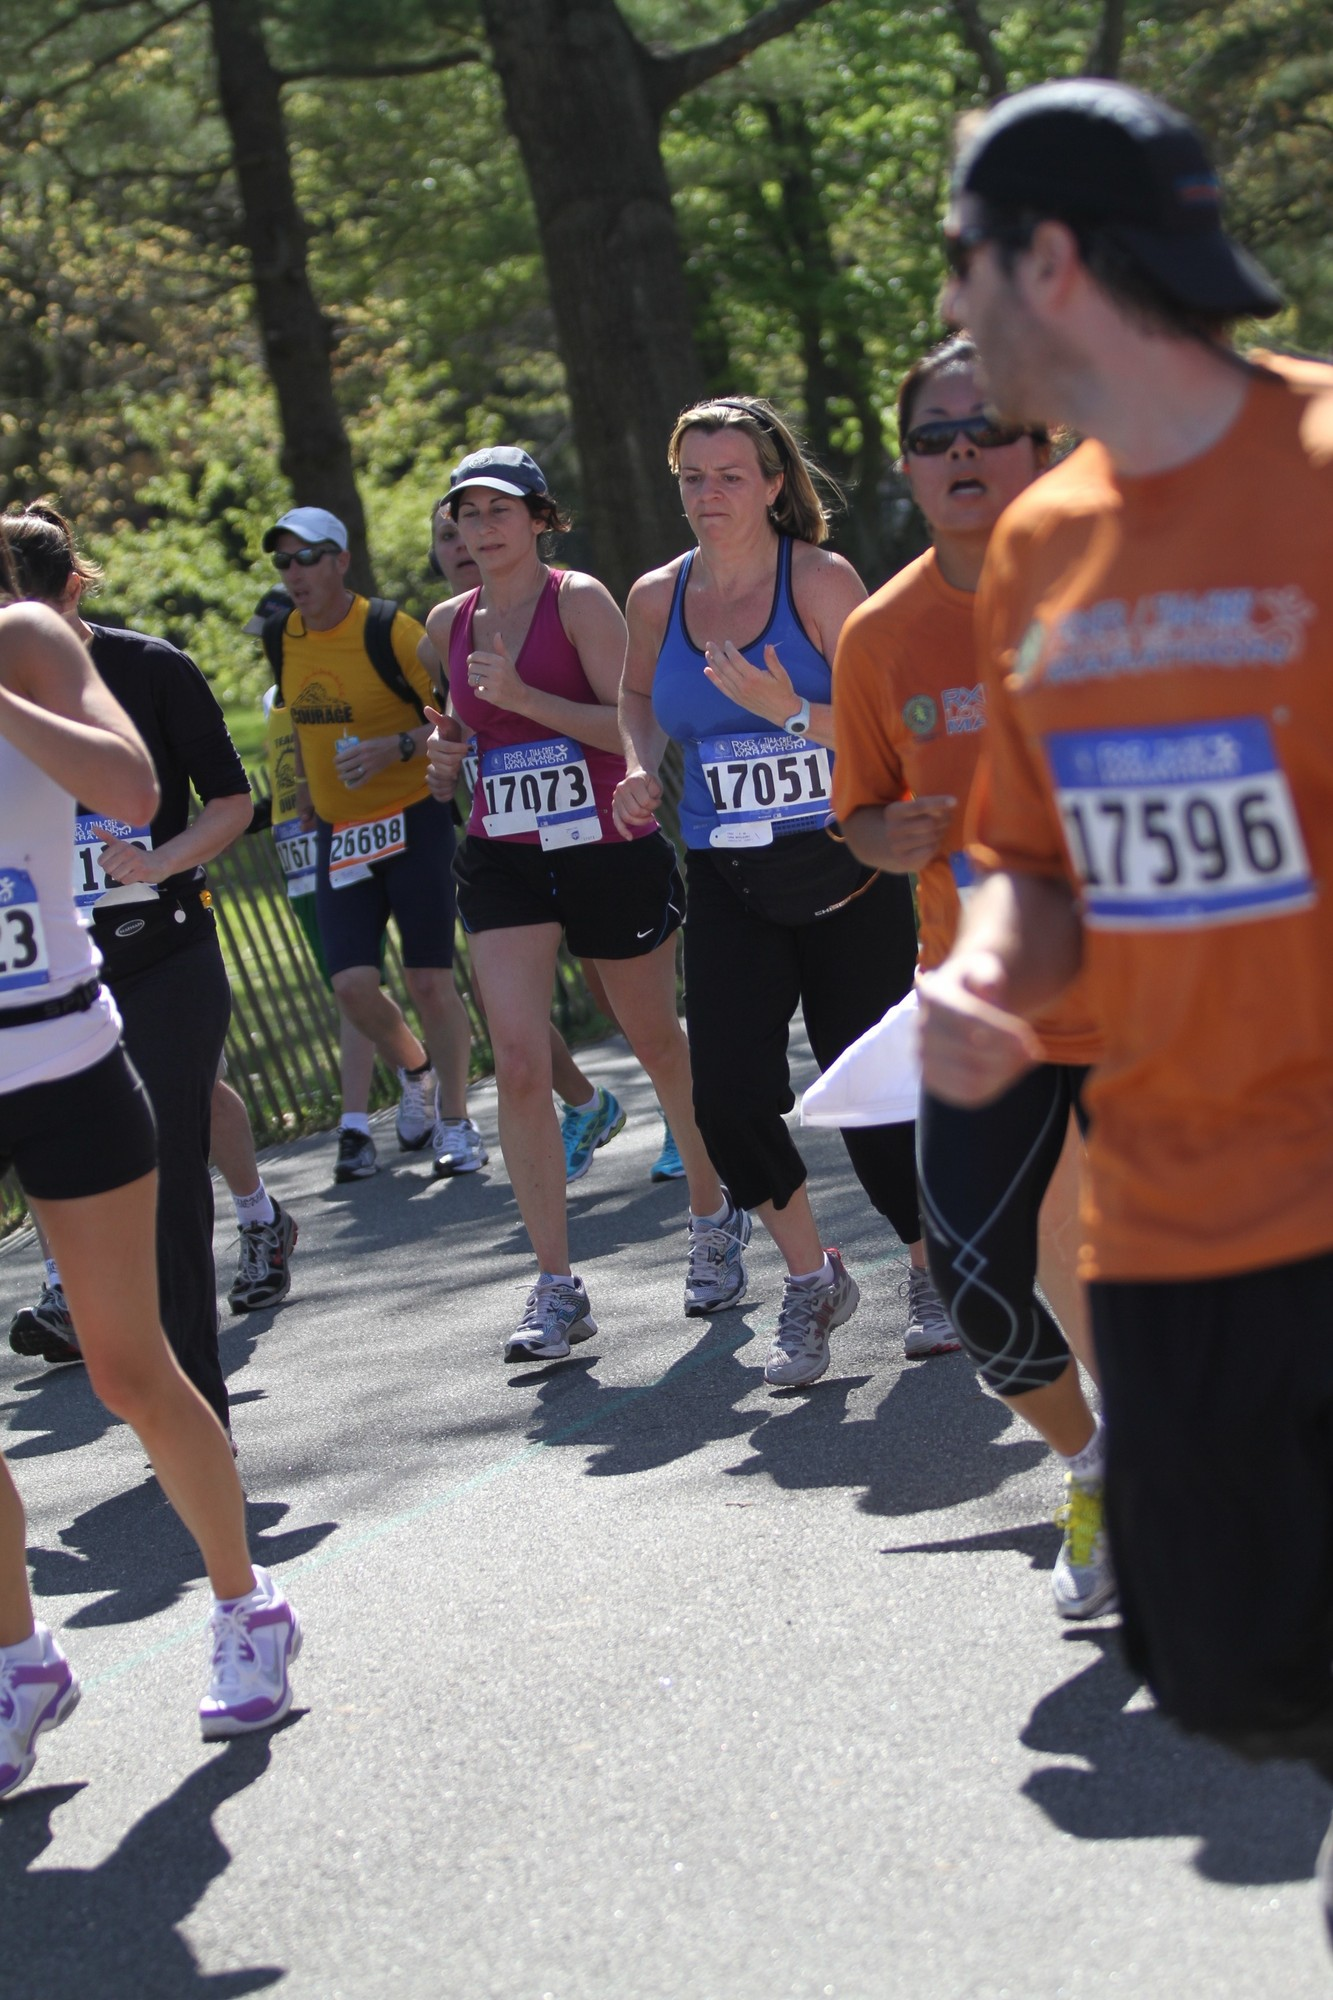 After a terror attack at the Boston Marathon on Monday, Nassau County Executive Ed Mangano said that county officials are reviewing security plans for the annual RXR Long Island Marathon, which is to take place in central Nassau on May 5. Above, runners at the 2012 Long Island Marathon.